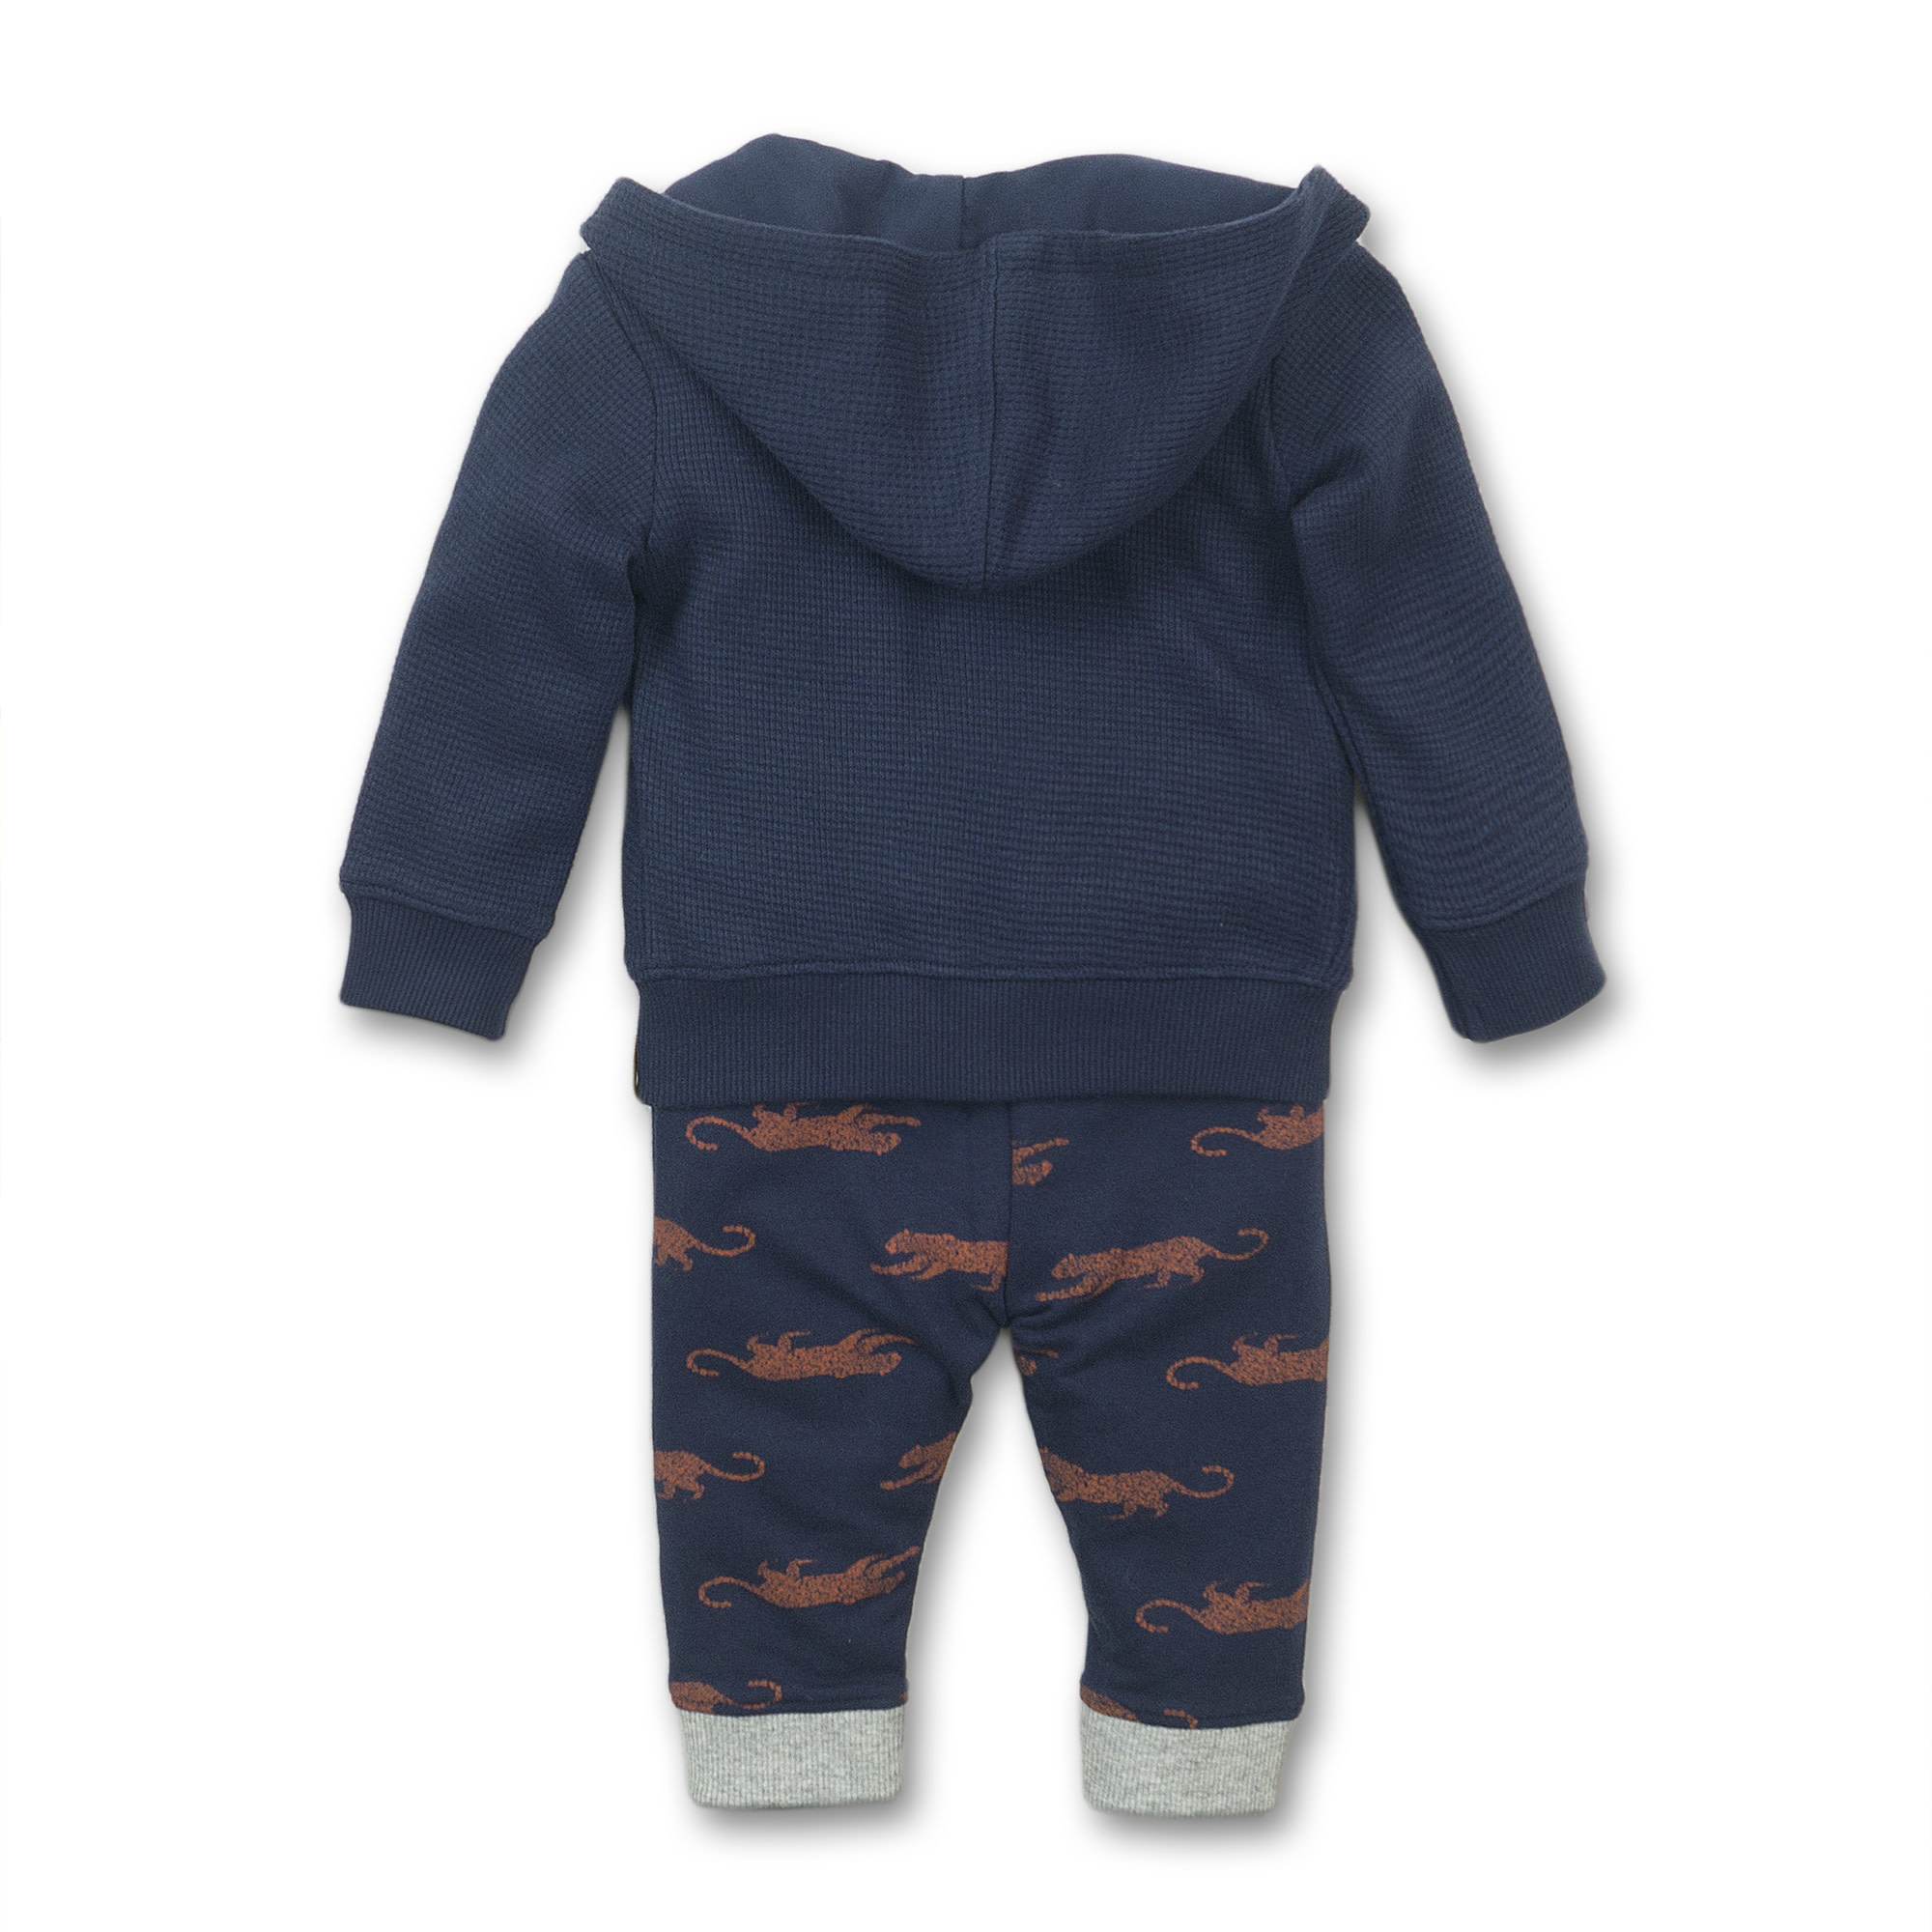 Andrew 3-Piece Baby Outfit